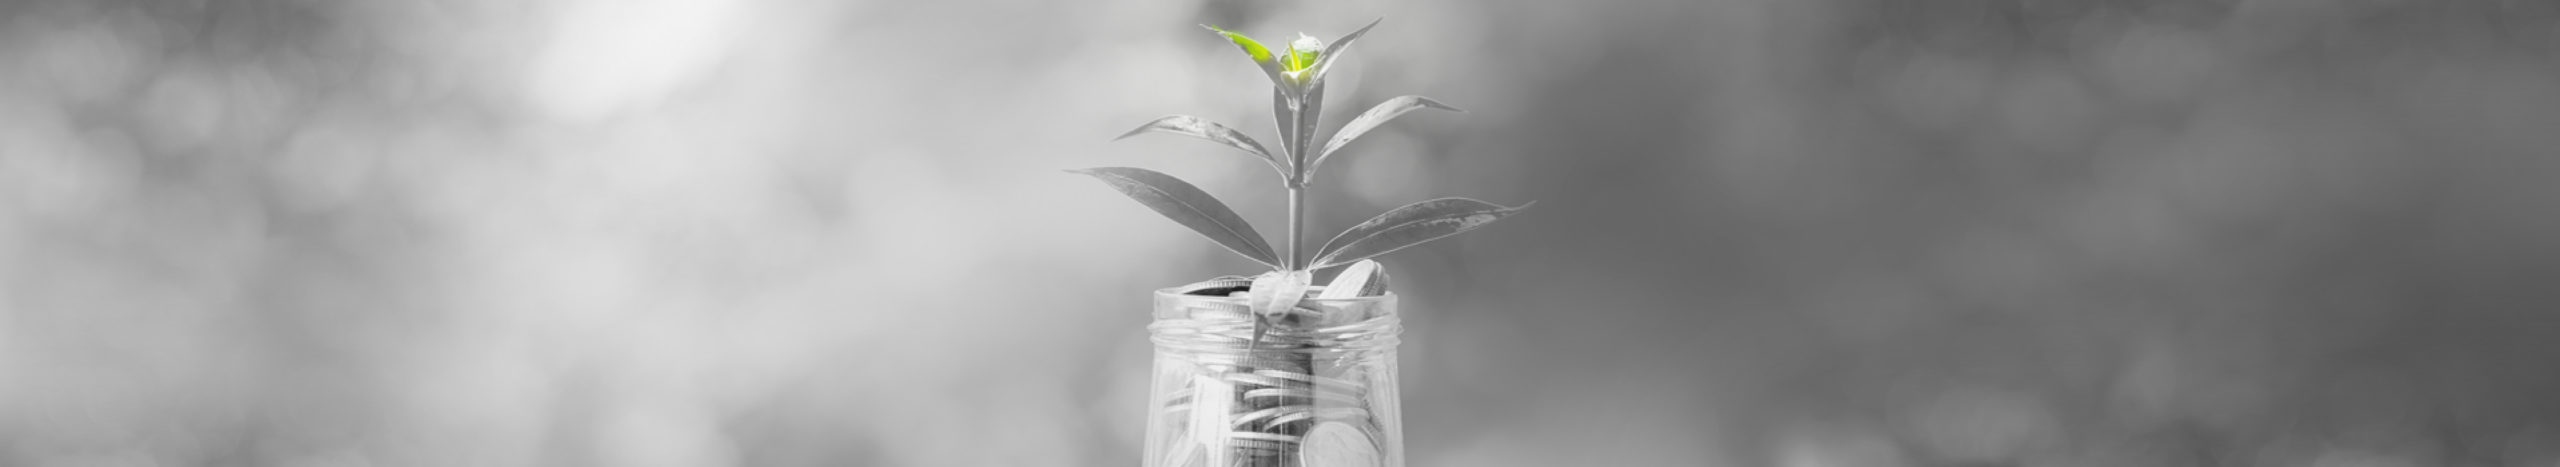 Wealth growing because of a good financial advisor